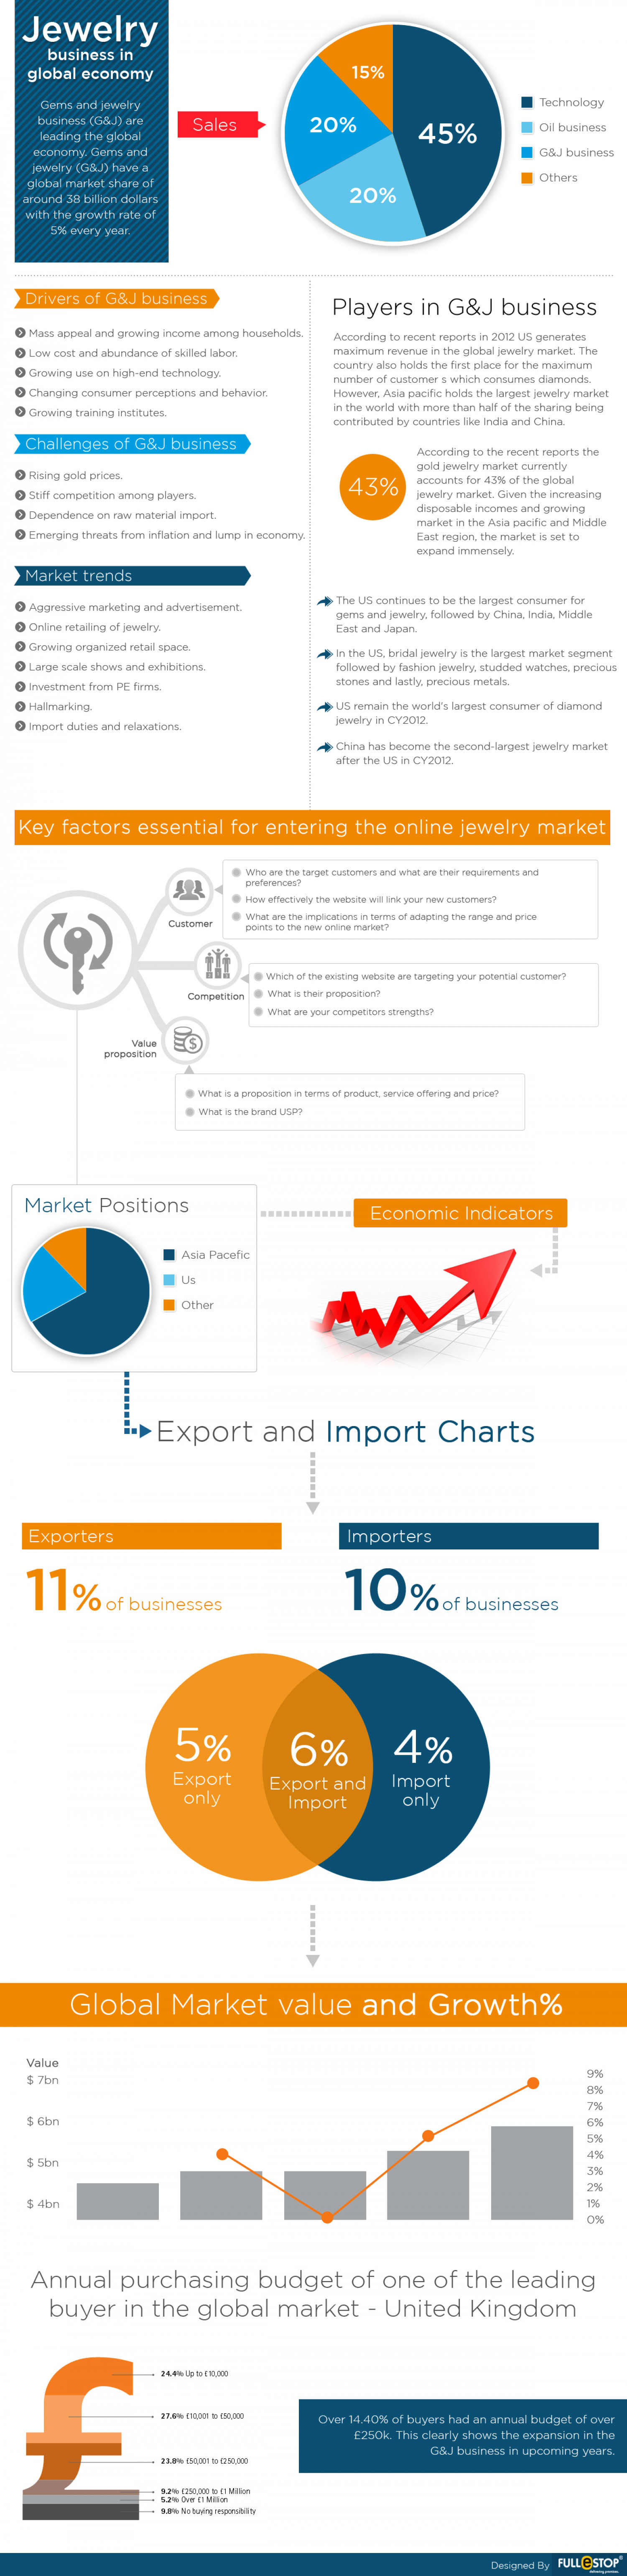 Fullestop Review: Jewelry Industry Infographic